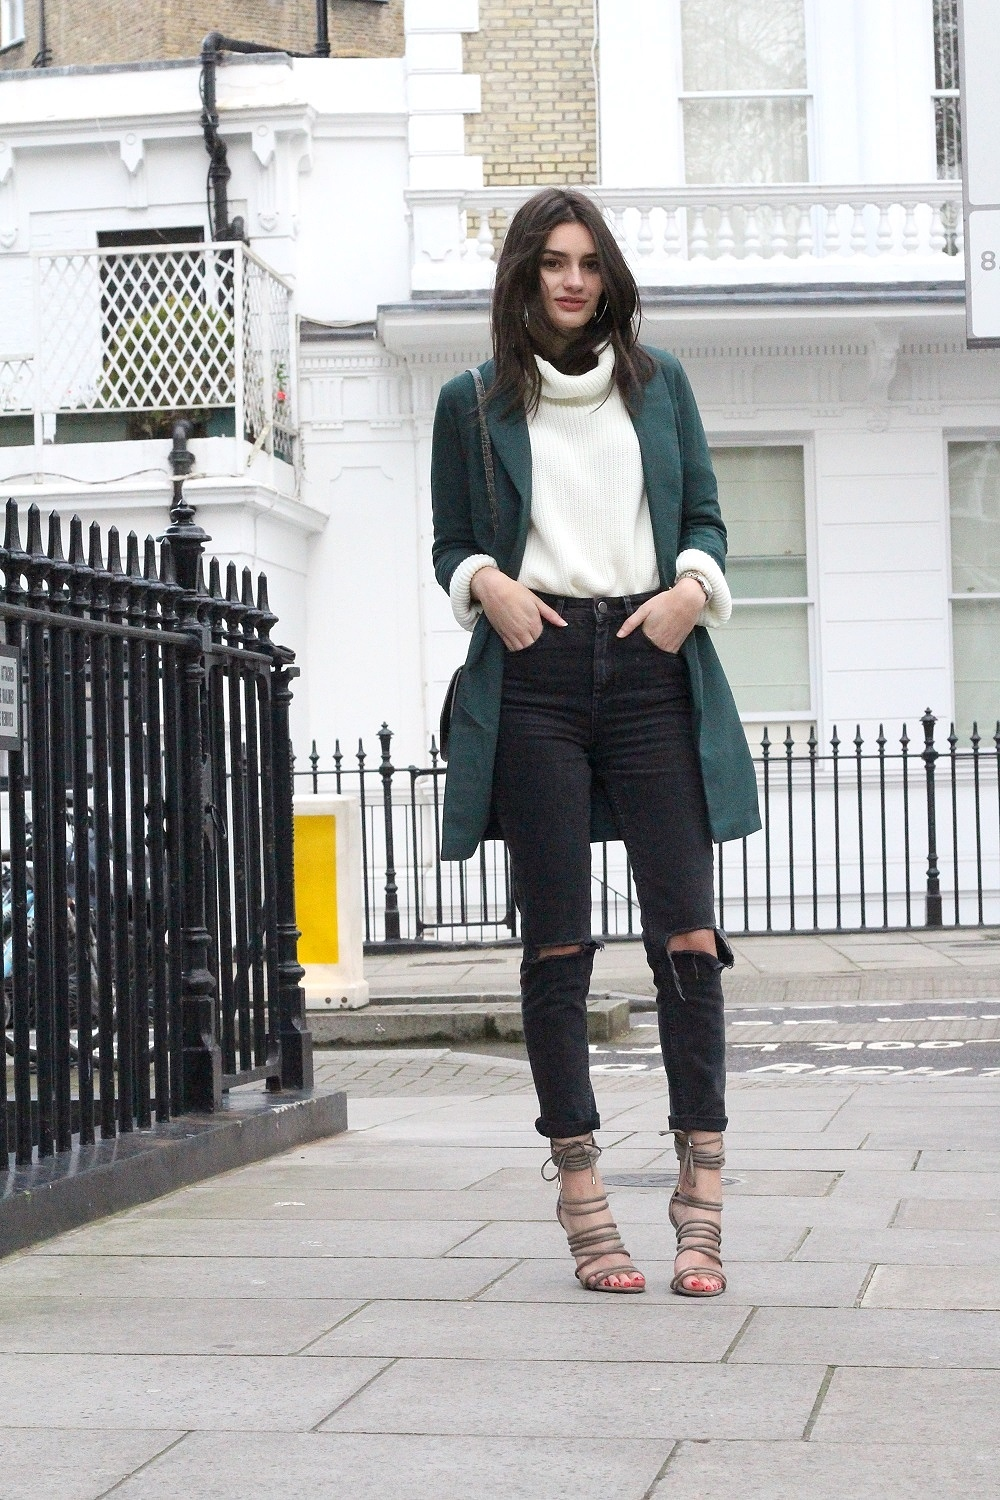 personal style ripped jeans and roll neck in winter